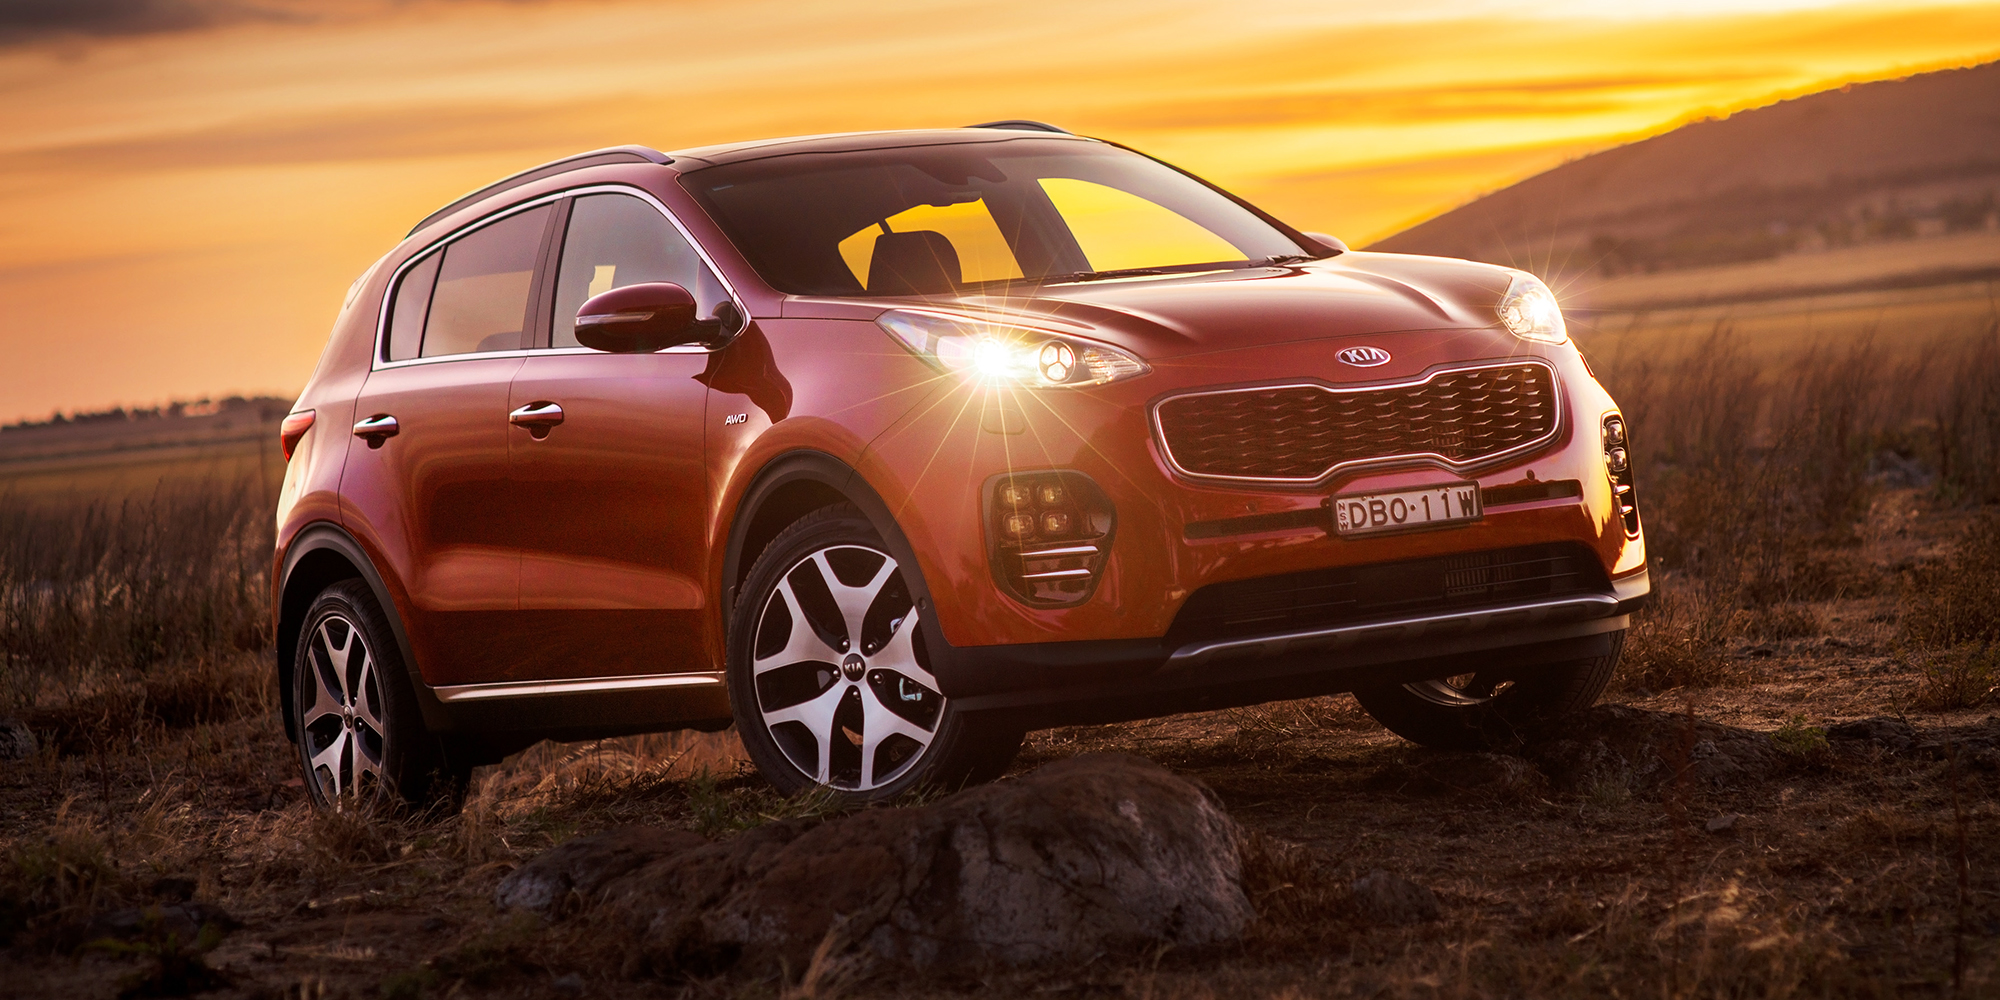 New Hyundai I30 >> 2016 Kia Sportage Review - photos | CarAdvice